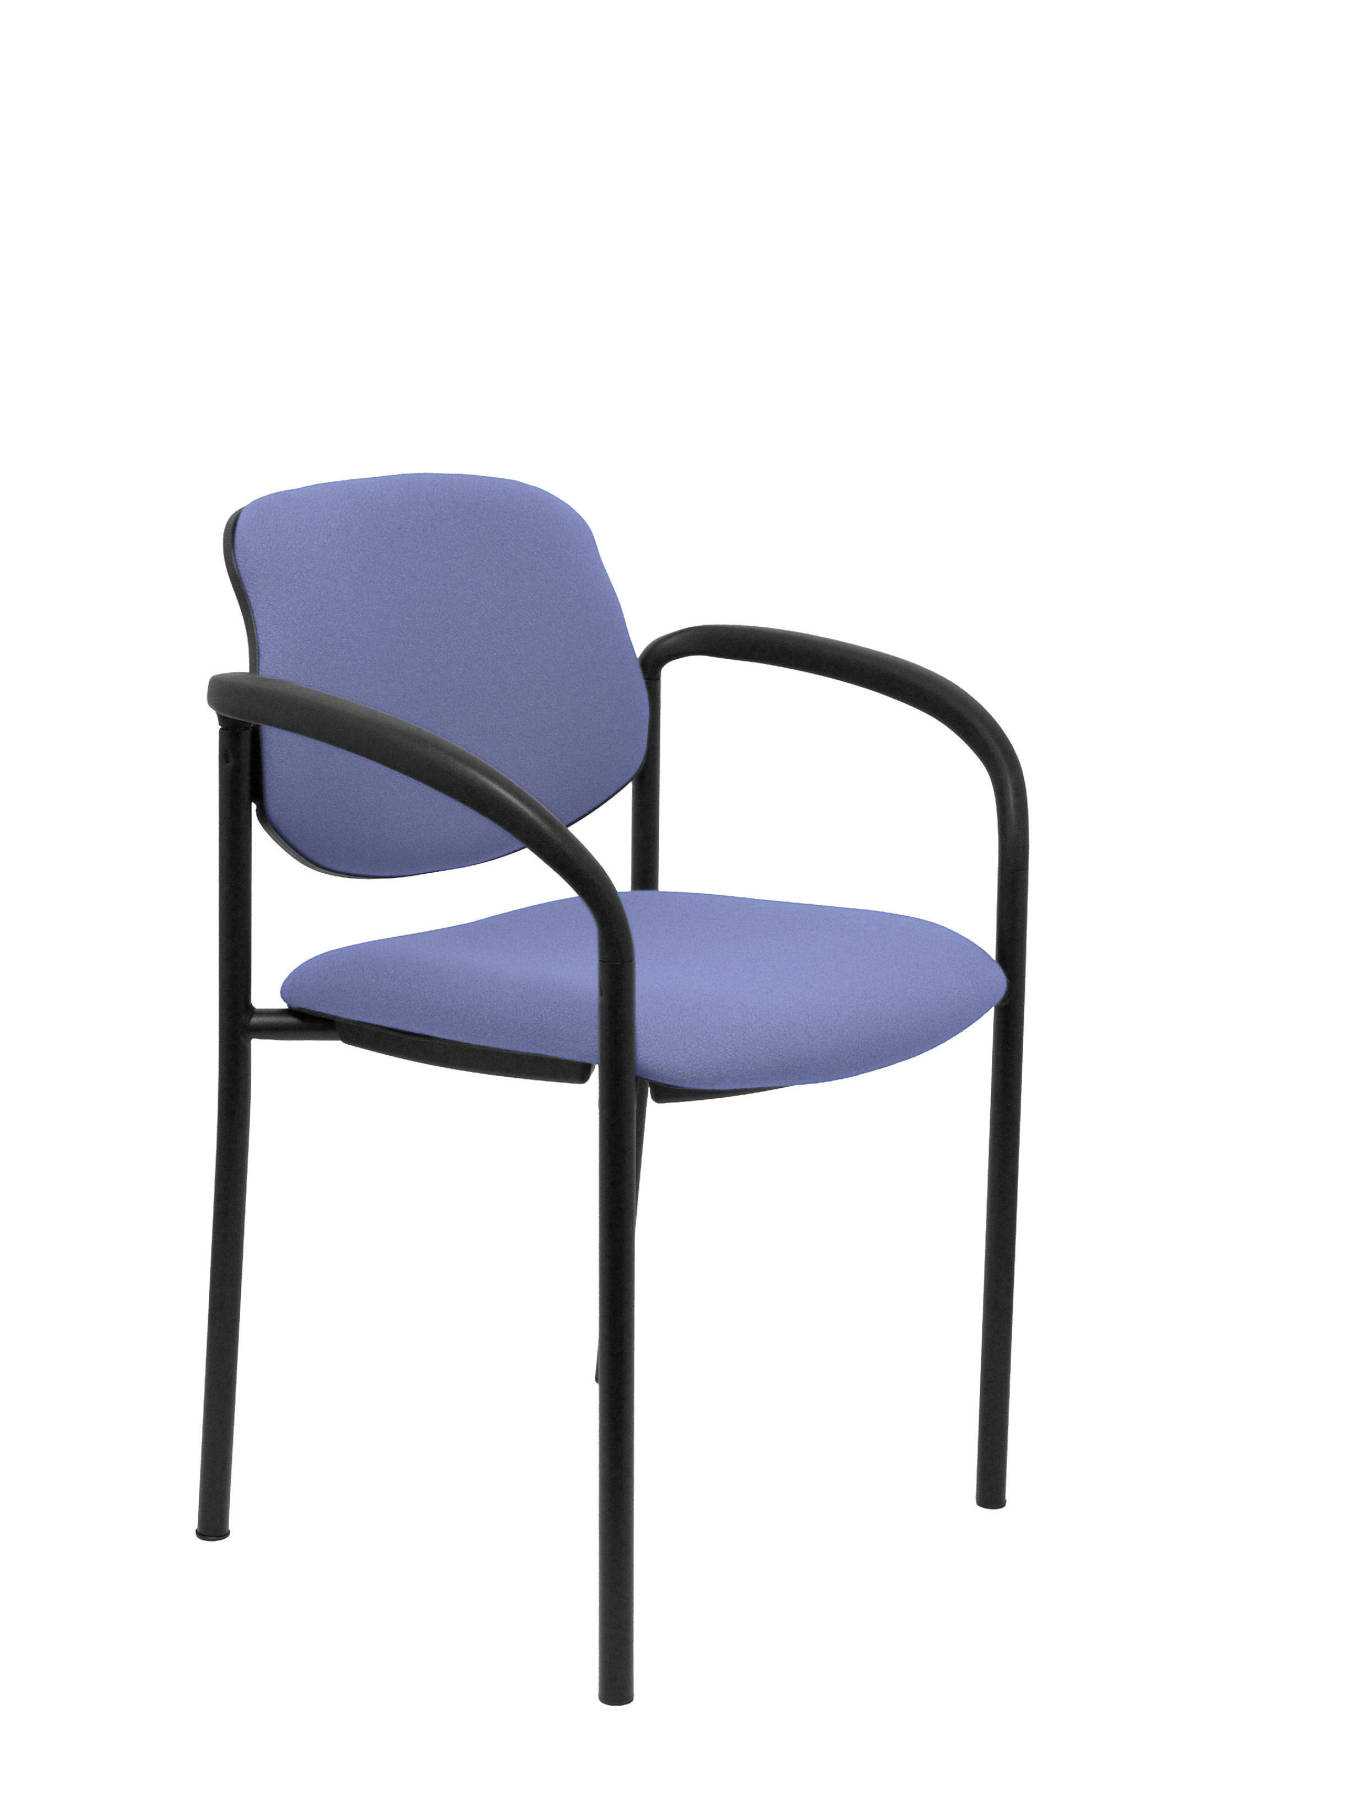 Visitor Chair 4's Topsy, With Arms And Estructrua Negro-up Seat And Backstop Upholstered In BALI Tissue Color Blue Clar